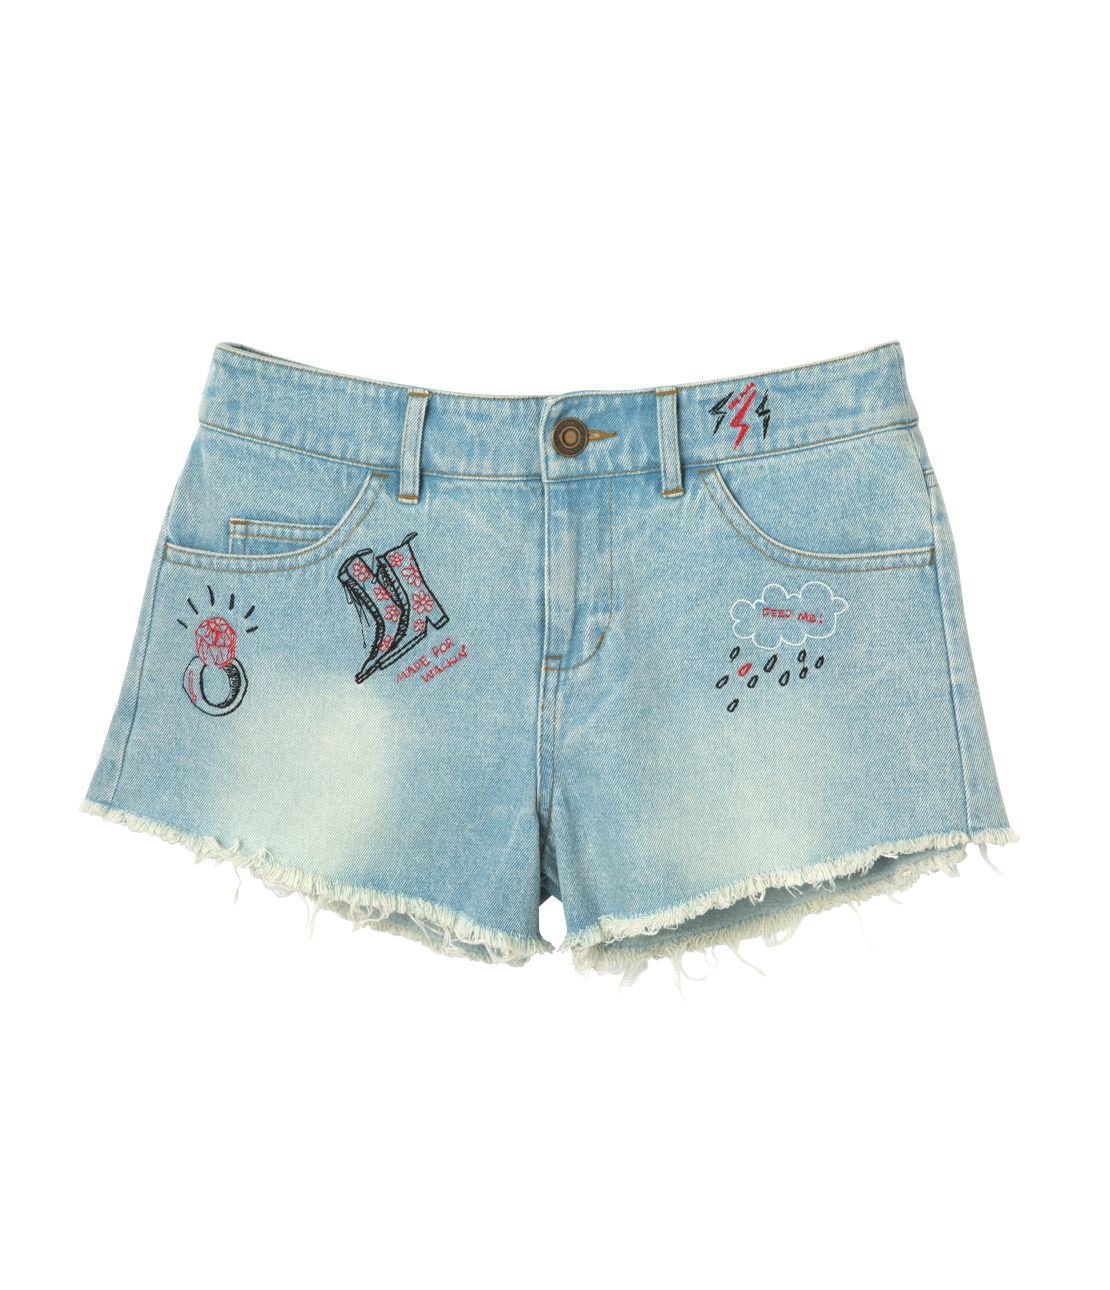 JRK embroidered shorts denim